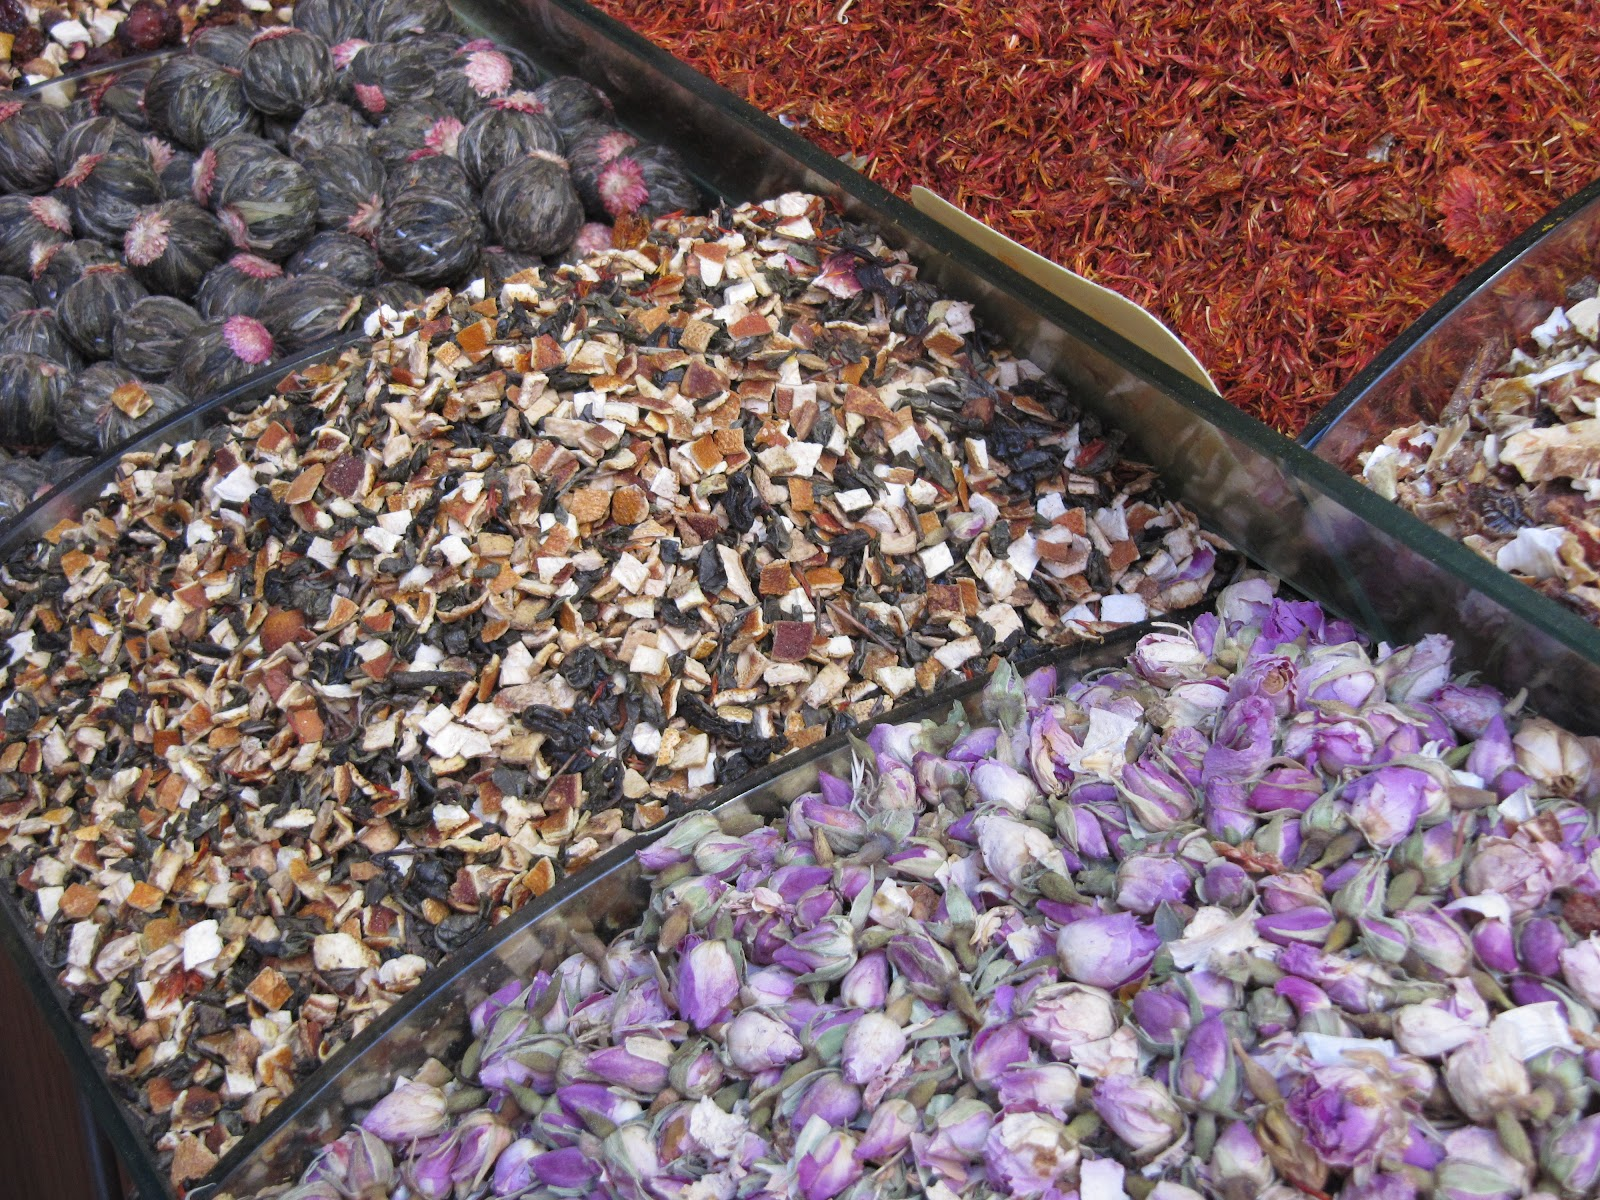 The Egyptian Spice Market Zurich